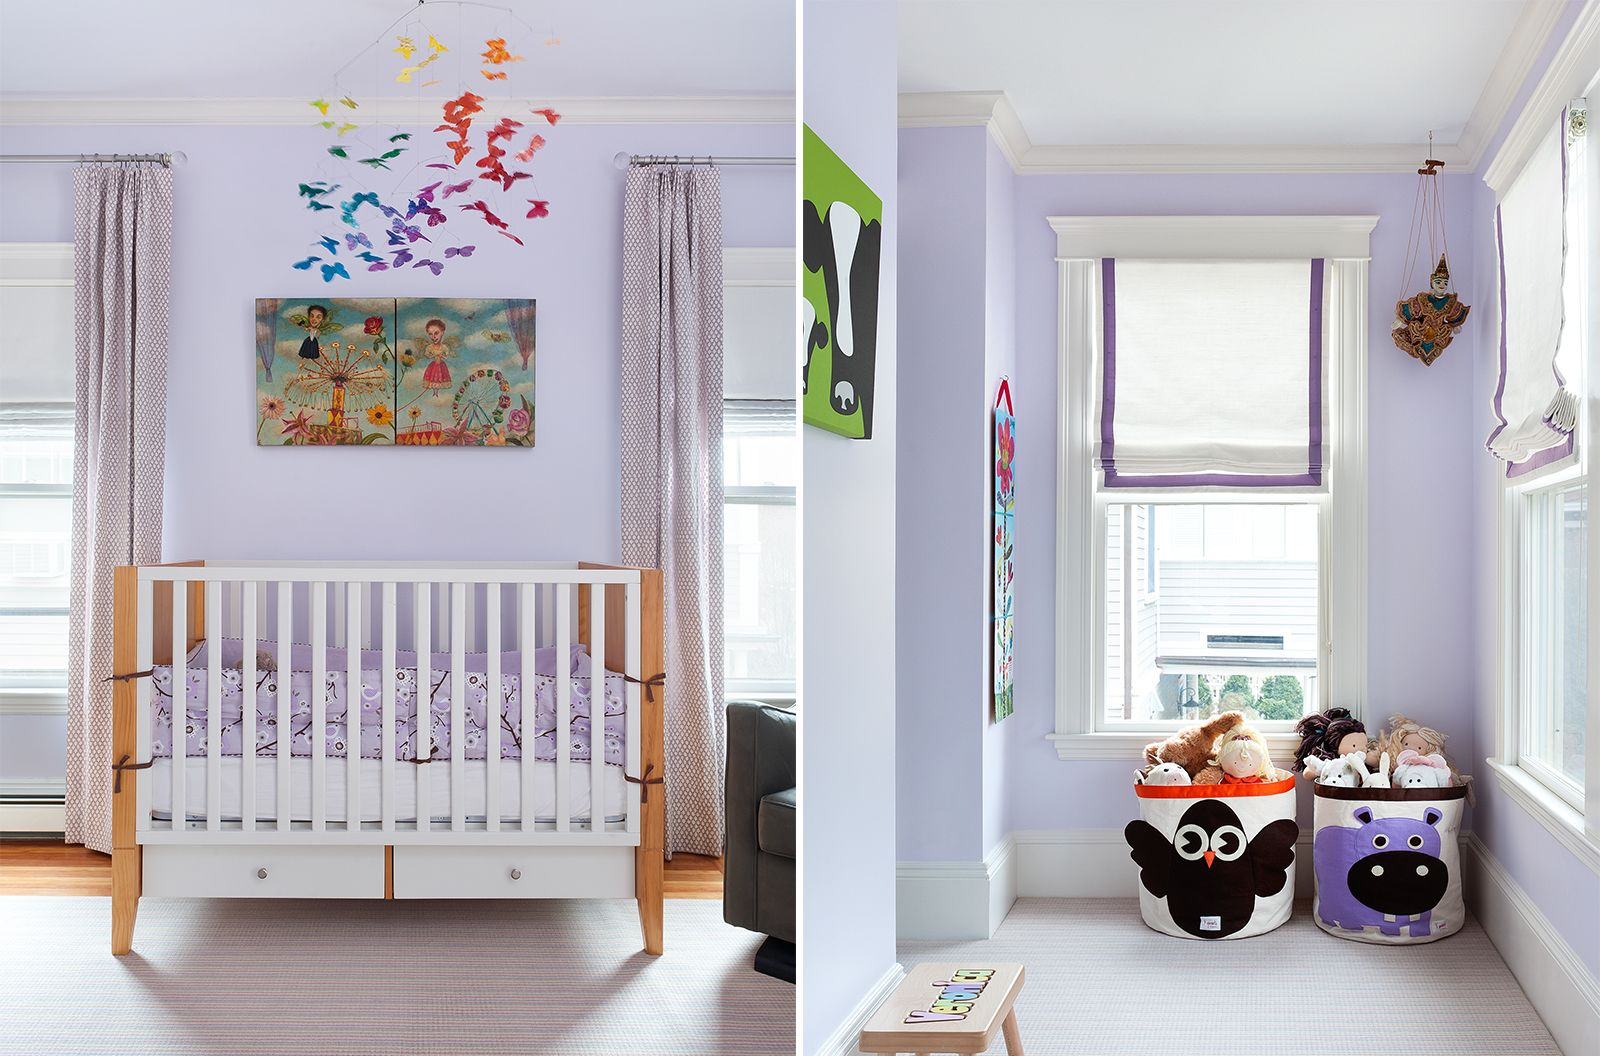 Mandarina Studio Boston Nursery Interior Design Contemporary Baby Room Colorful Crib Mobile Erflies Animal Toy